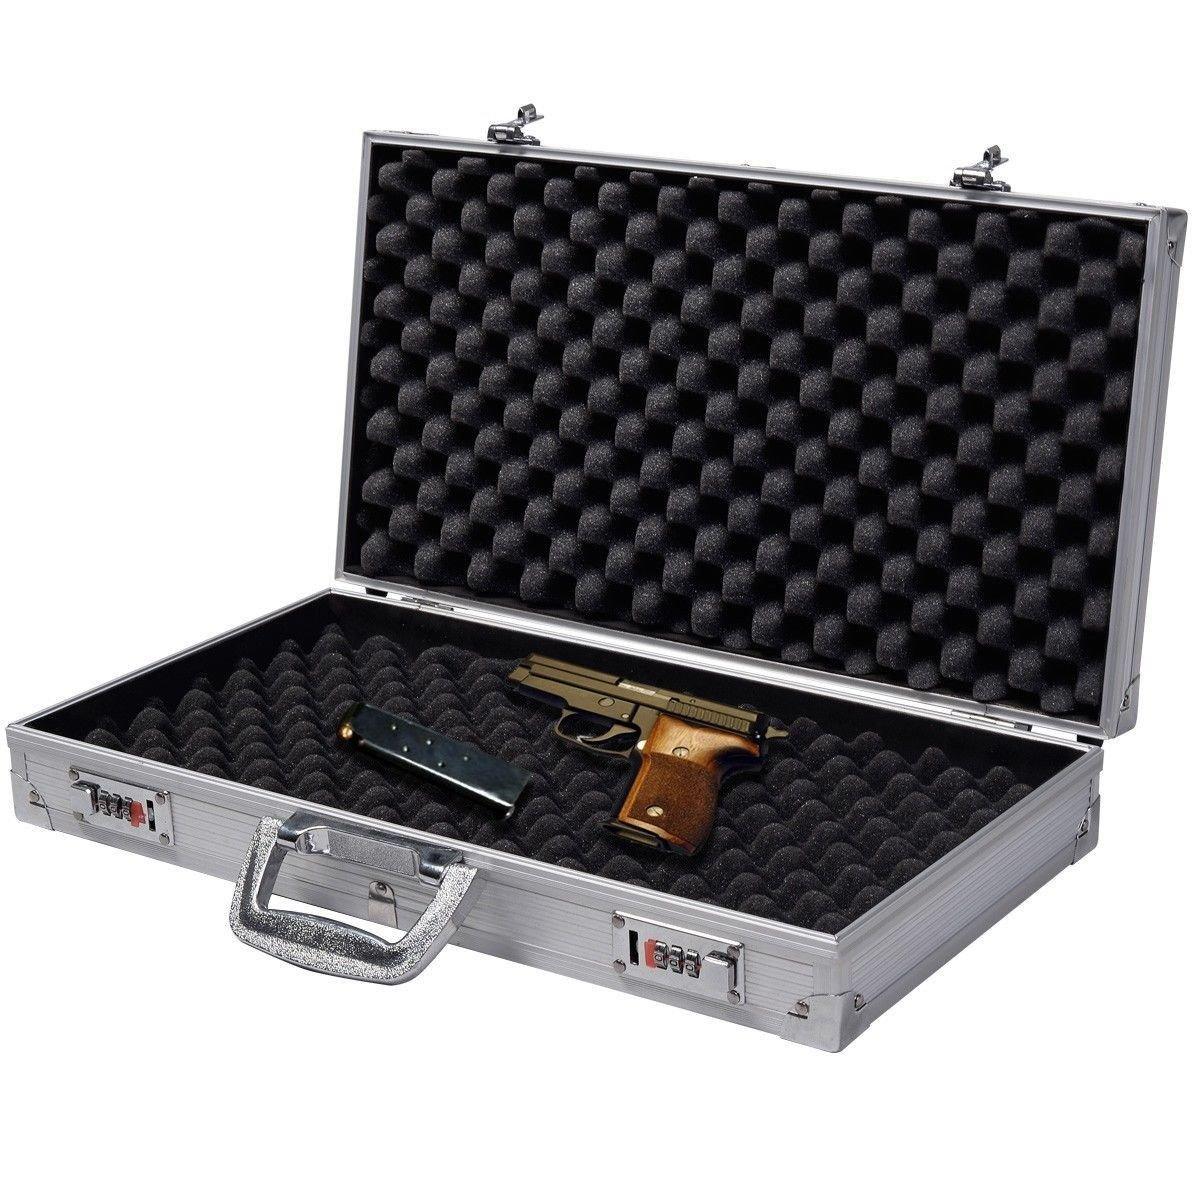 Super buy 18.5'' Aluminum Framed Locking Gun Pistol HandGun Lock Box Hard Storage Carry Case